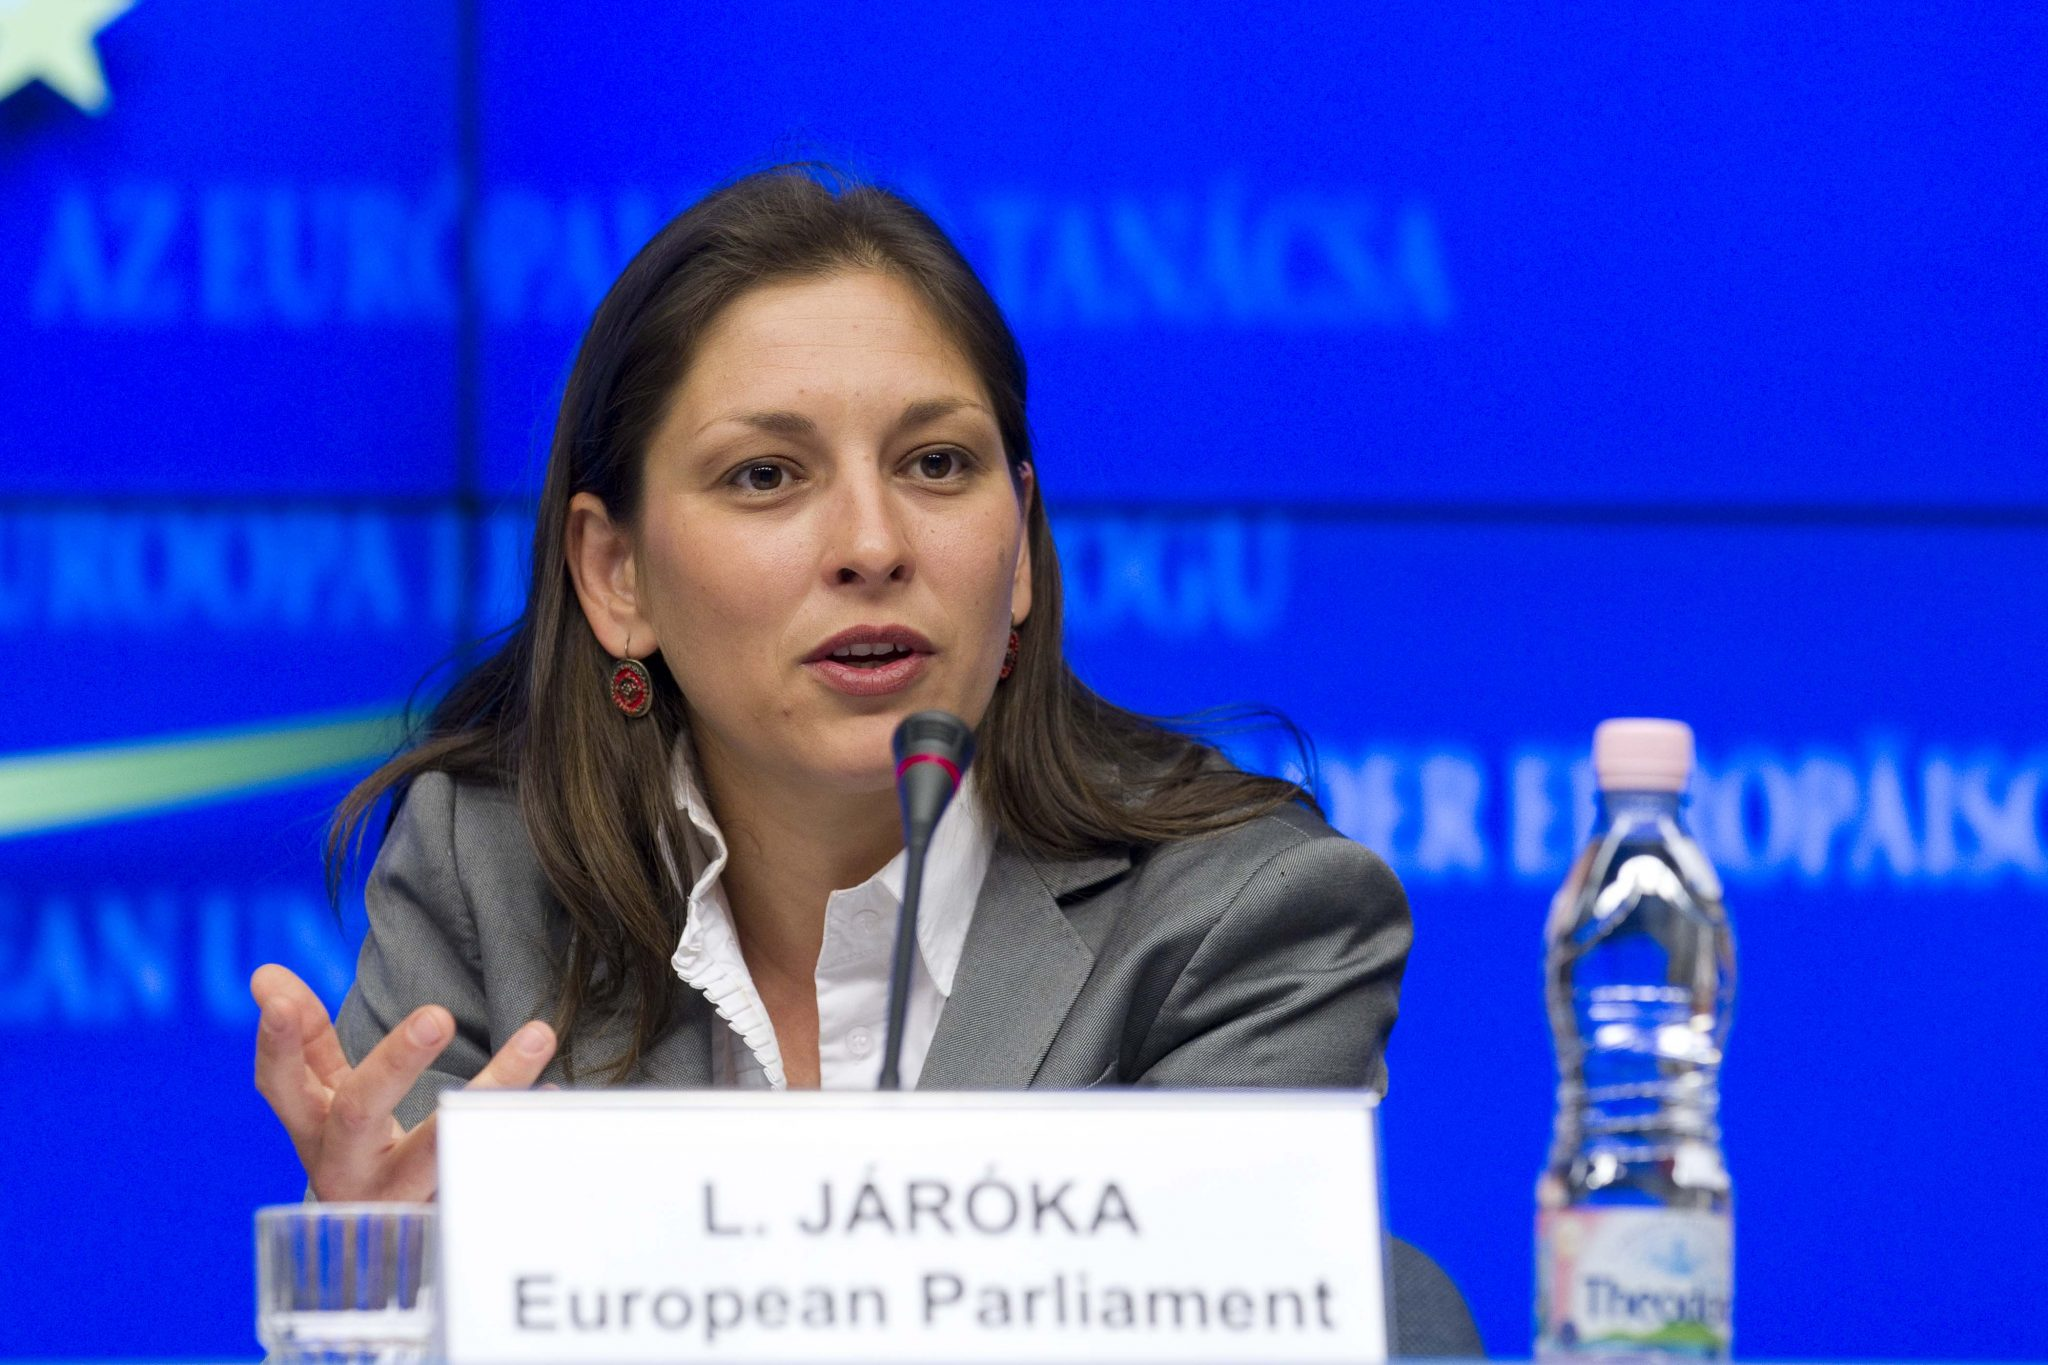 Fidesz MEP on Roma Holocaust: Action against Discrimination of Minorities 'Duty' post's picture